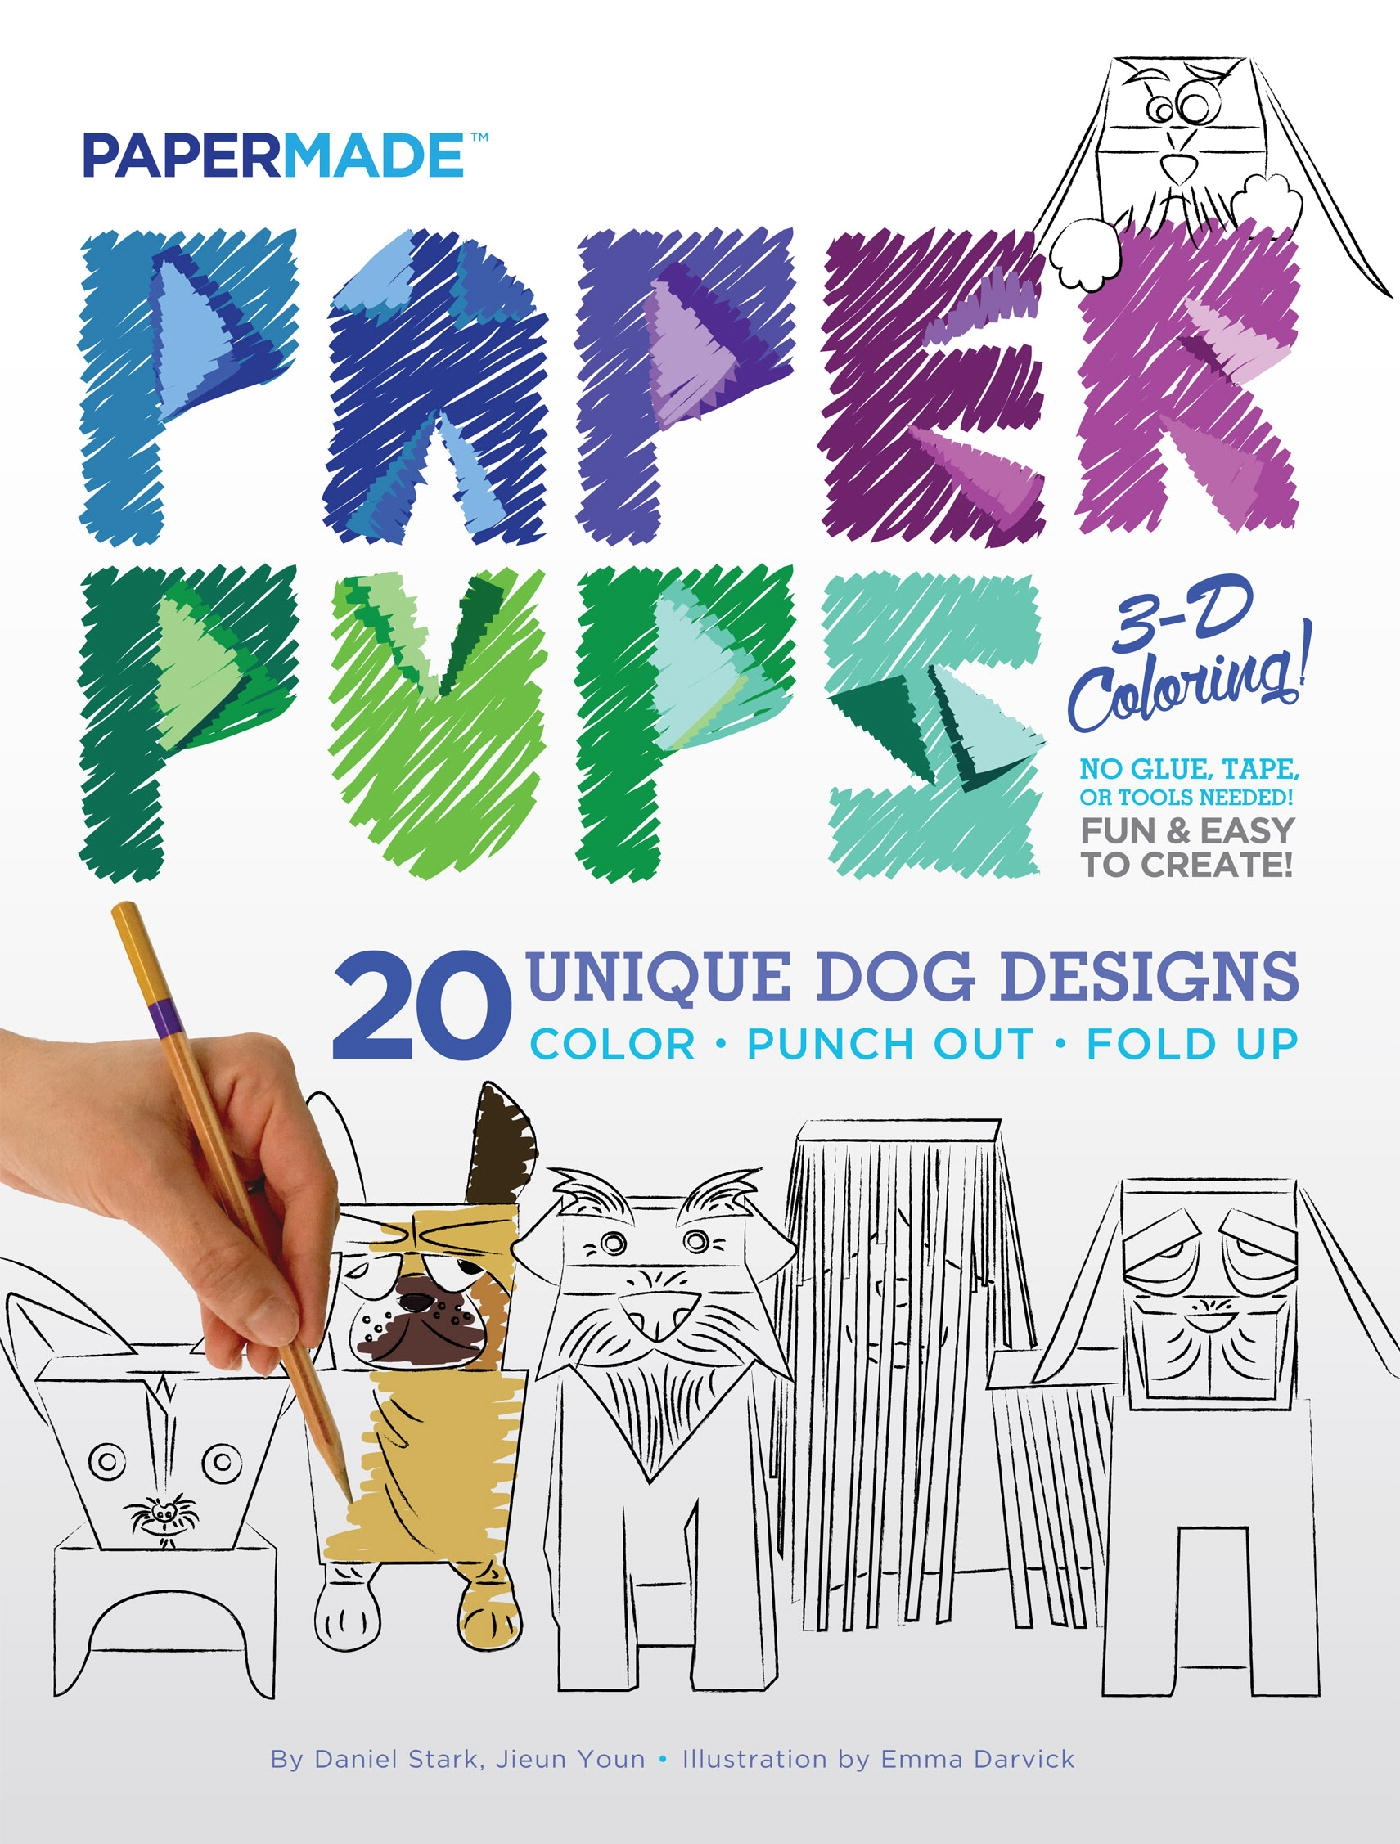 Paper Pups 3D Coloring Book by PaperMade - Penguin Books Australia